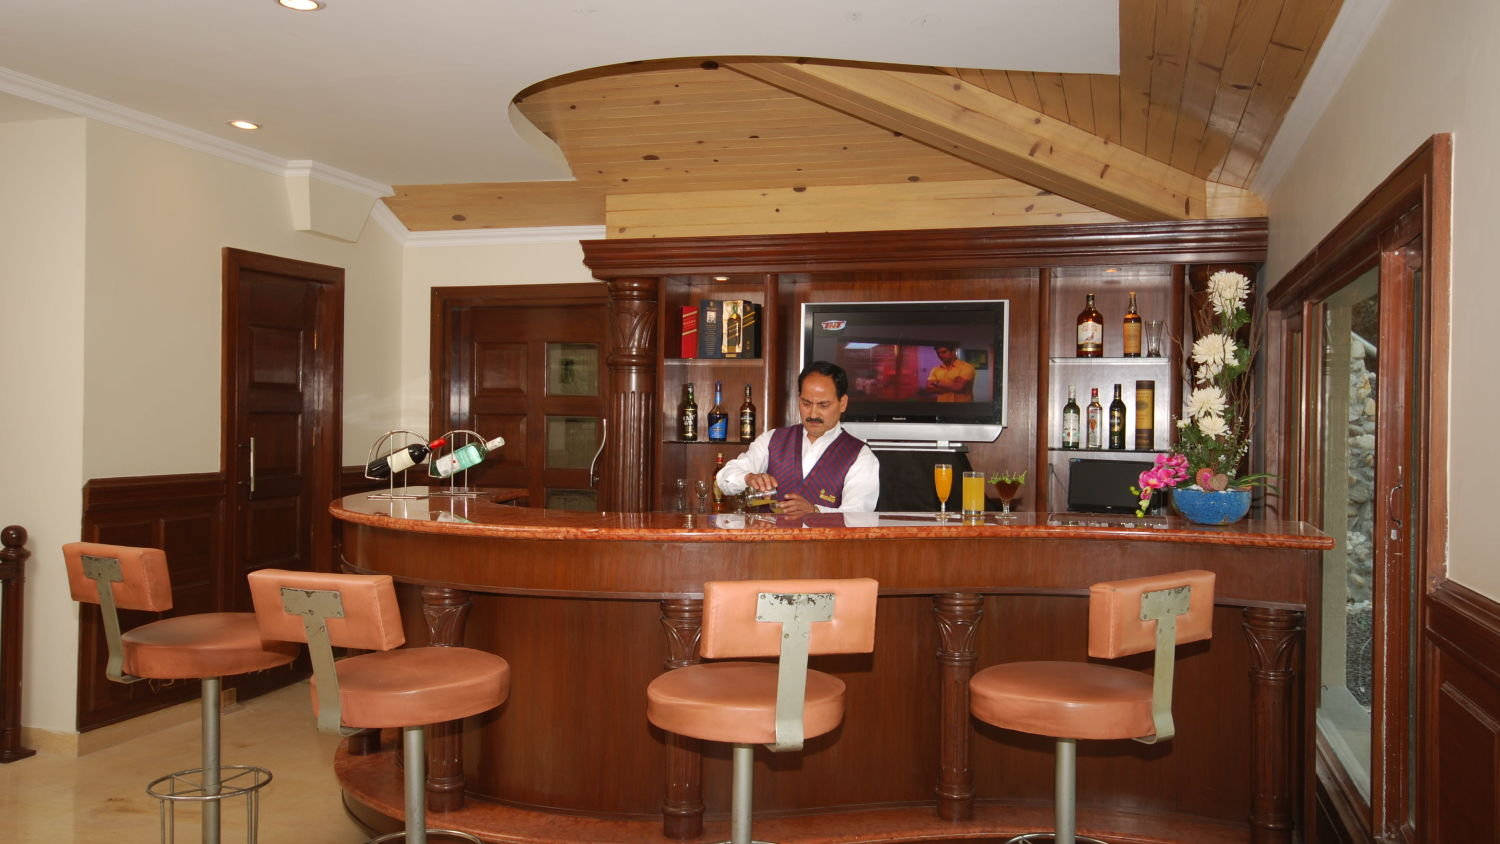 Bar in Mussoorie, Lounge Bar in Mussoorie, Hotel Madhuban Sarovar Portico, Mussoorie